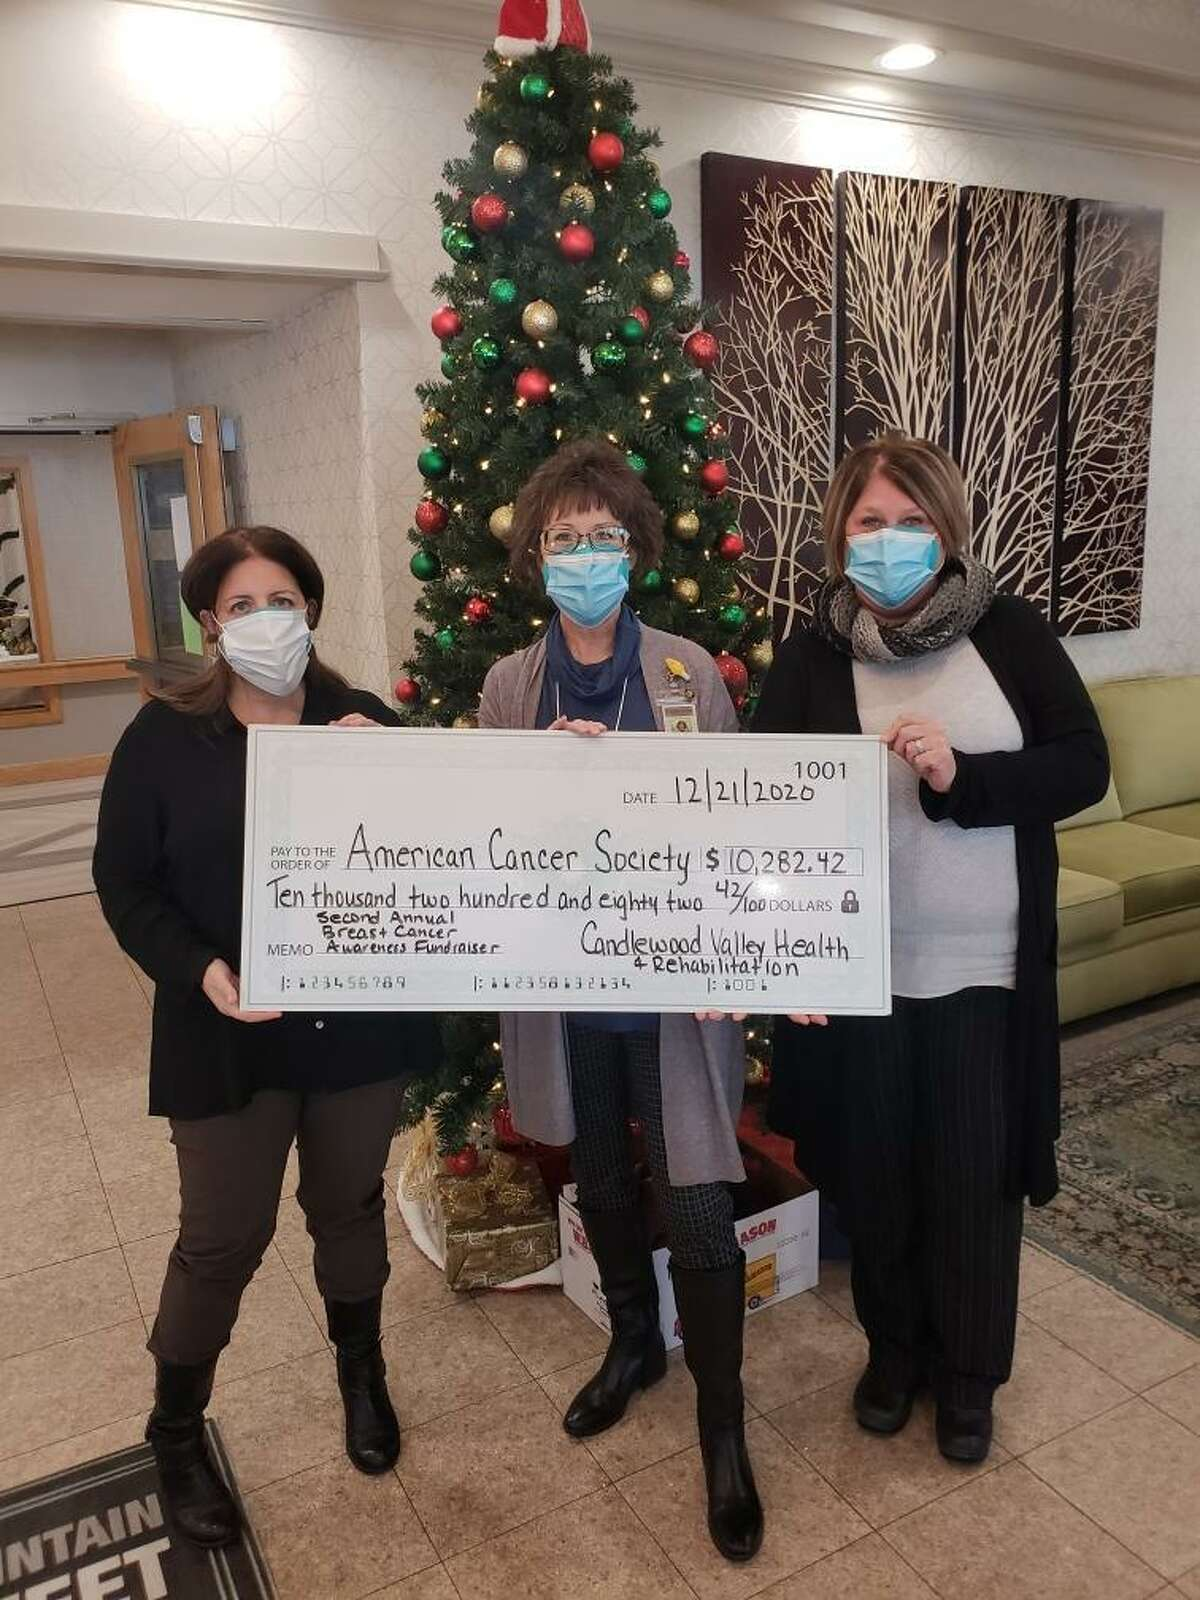 From left are Melissa Marici, Patty Murphy and Georgia Epting, all from Candlewood Valley Health and Rehabilitation.